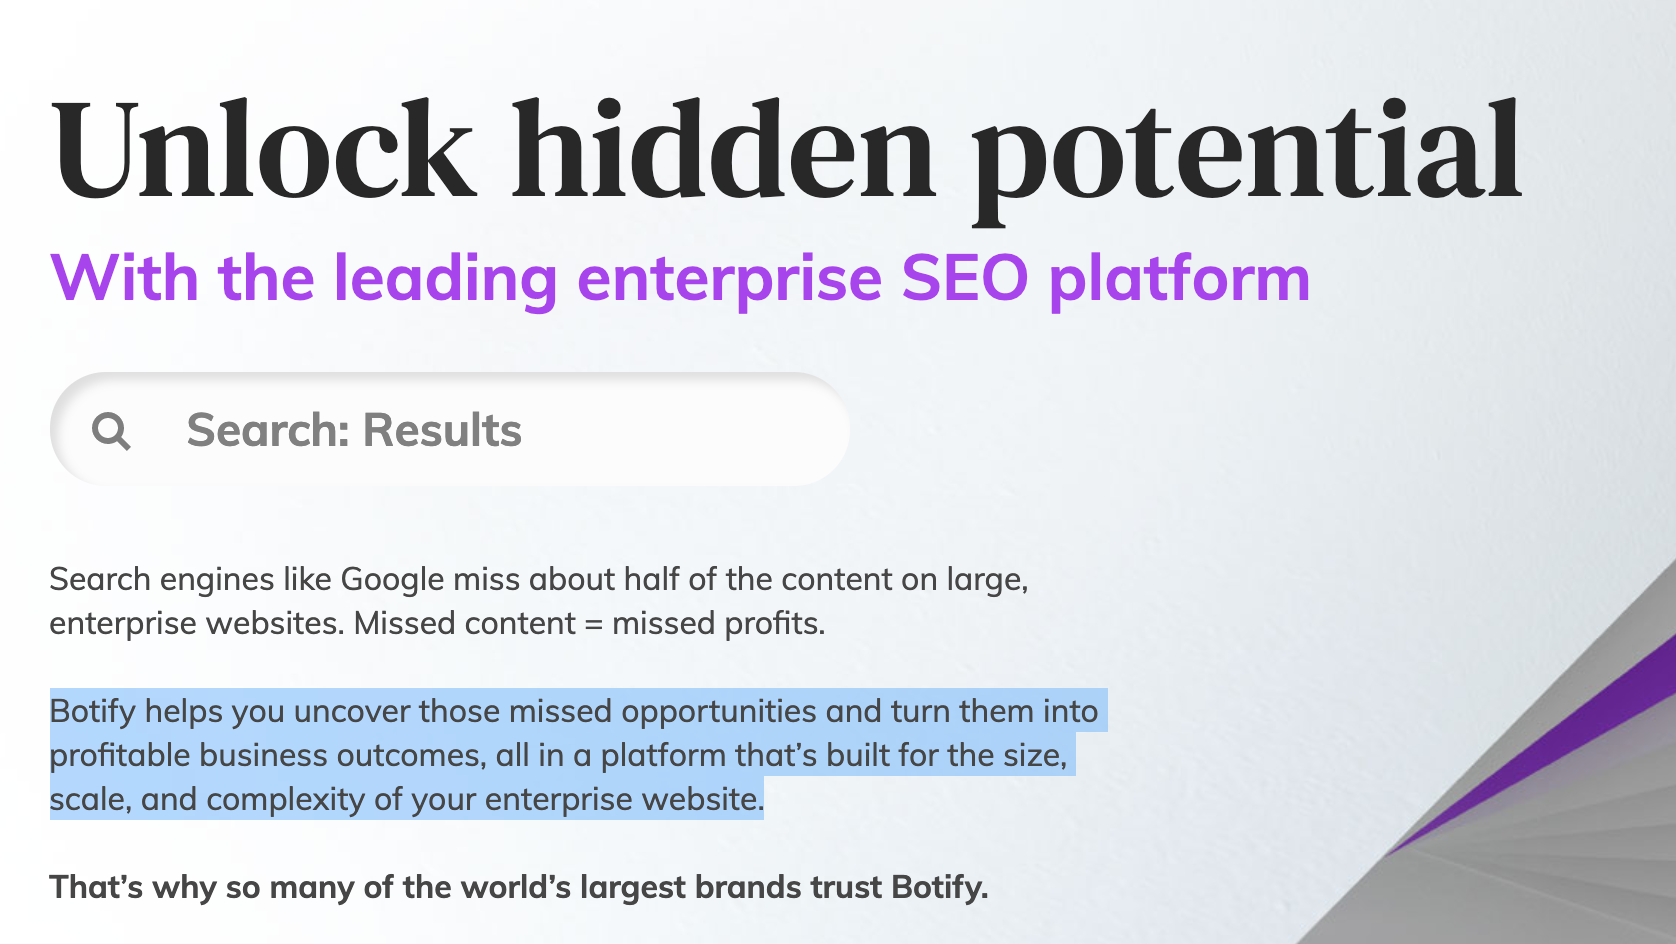 Unlock hidden potential  With the leading enterprise SEO platform Q Search: Results  Search engines like Google miss about half of the content on large, enterprise websites. Missed content = missed profits.  Botify helps you uncover those missed opportunities and turn them into profitable business outcomes, all in a platform that's built for the size,  scale, and complexity of your enterprise website.  That's why so many of the world's largest brands trust Botify.